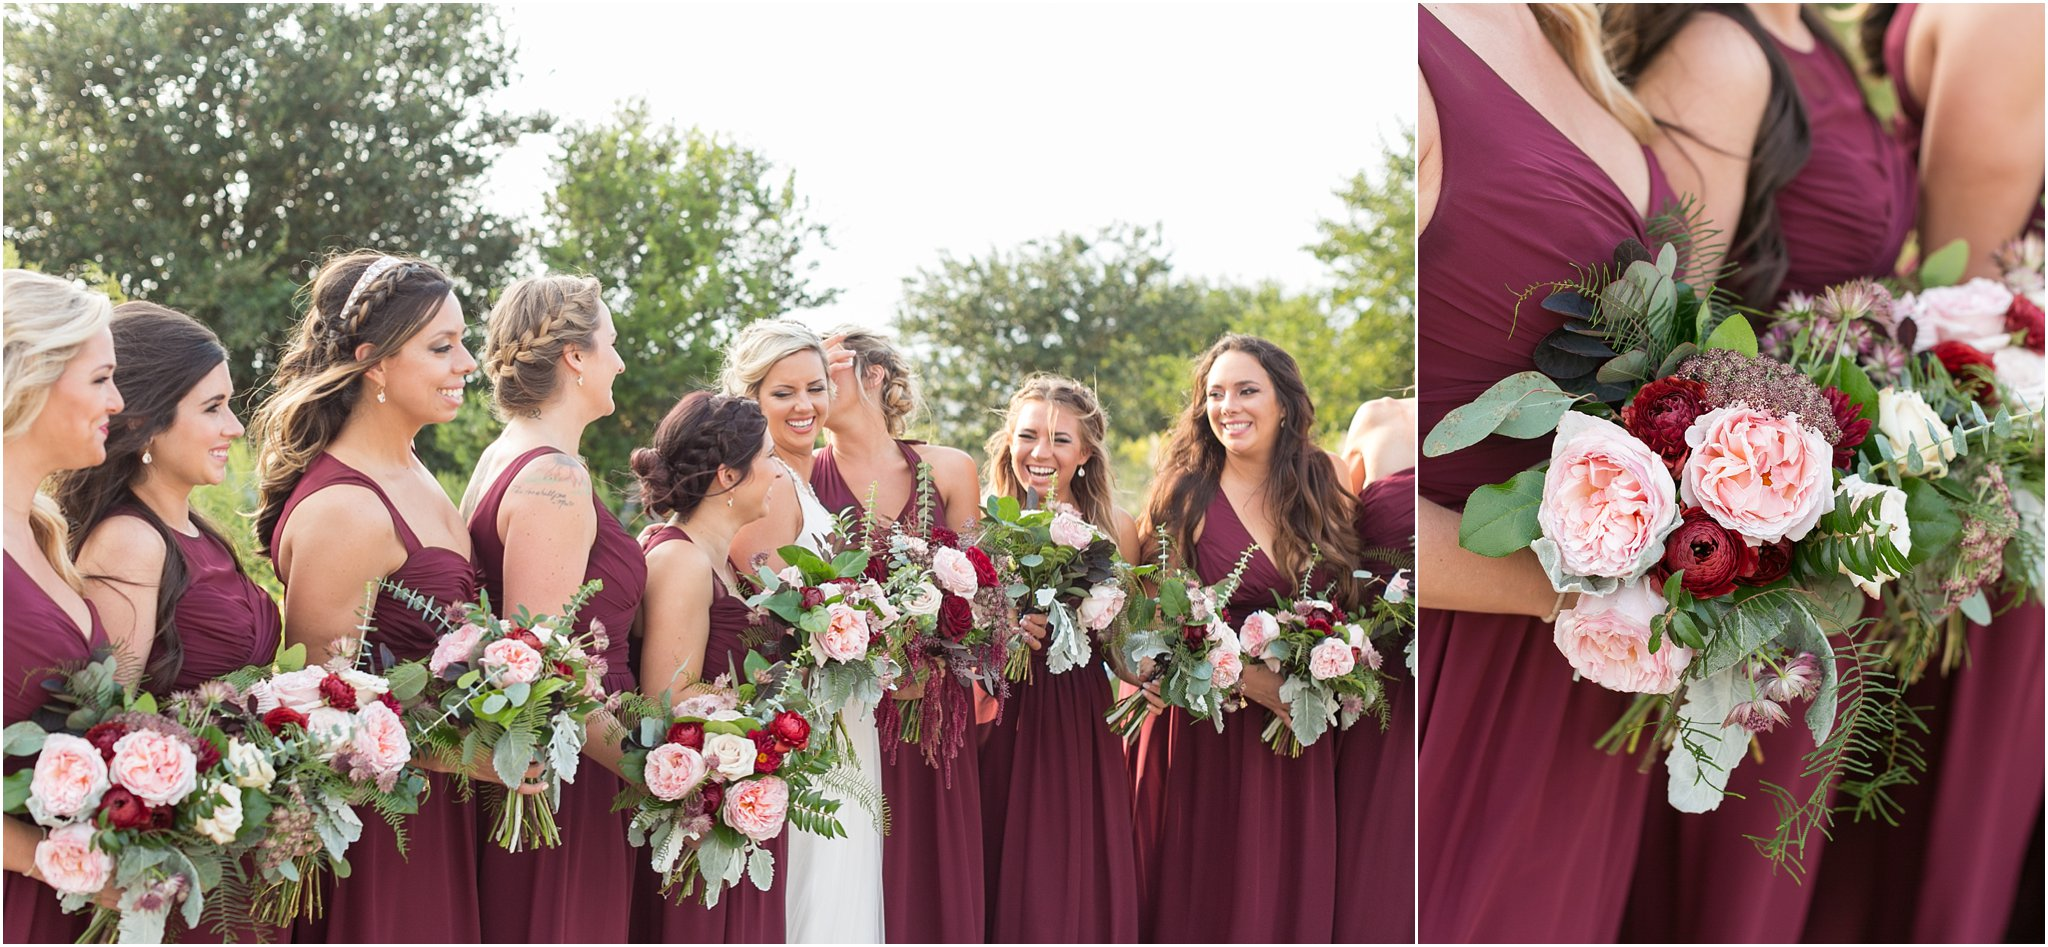 jessica_ryan_photography_virginia_wedding_photographer_candid_authentic_hampton_roads_wedding_photography_marina_shores_yacht_club_first_landing_state_park_woodland_theme_garden_3333